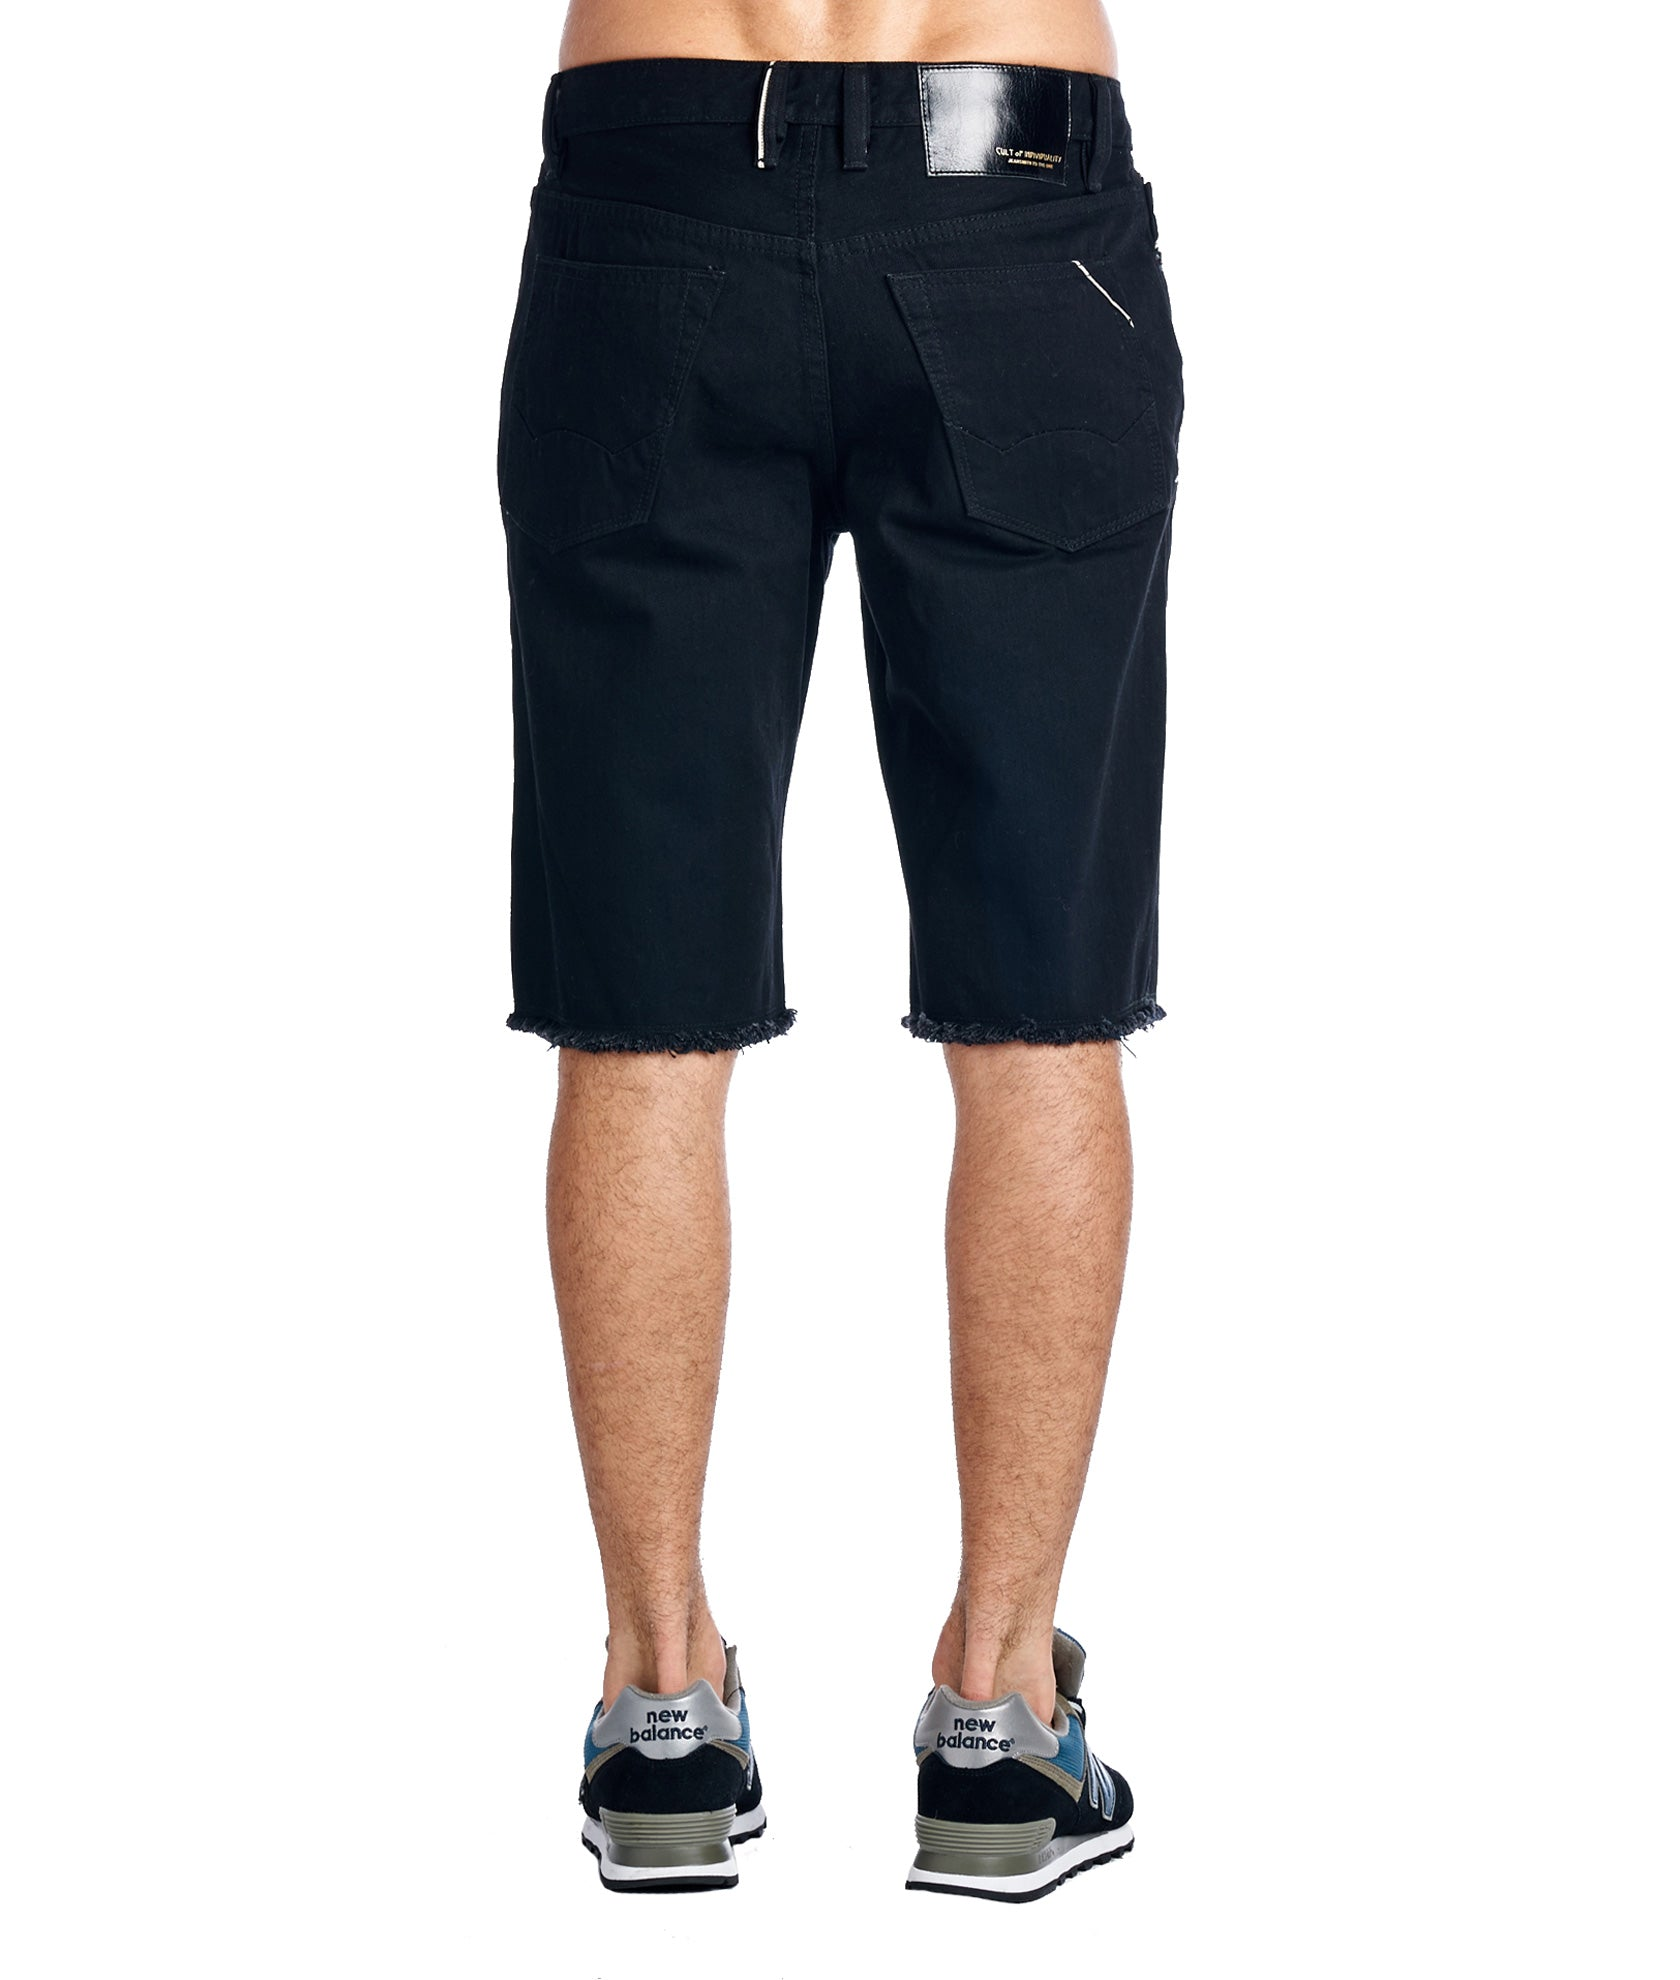 Cult of IndividualityMen's Rebel Denim Shorts in Black